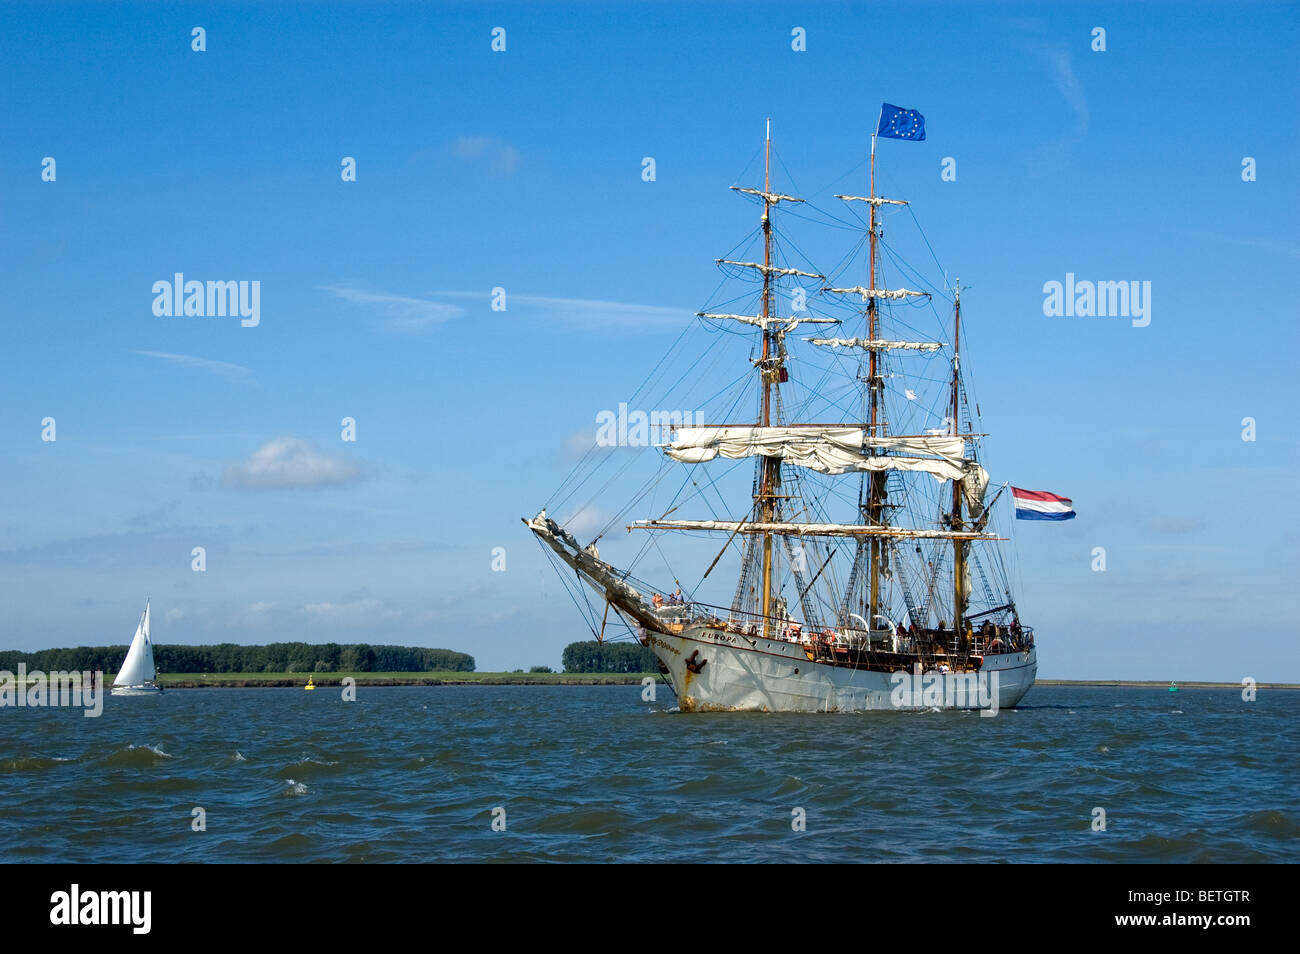 Sailing ship on the river Scheldt during the Tall Ship's Race 2006, Antwerp, Belgium - Stock Image